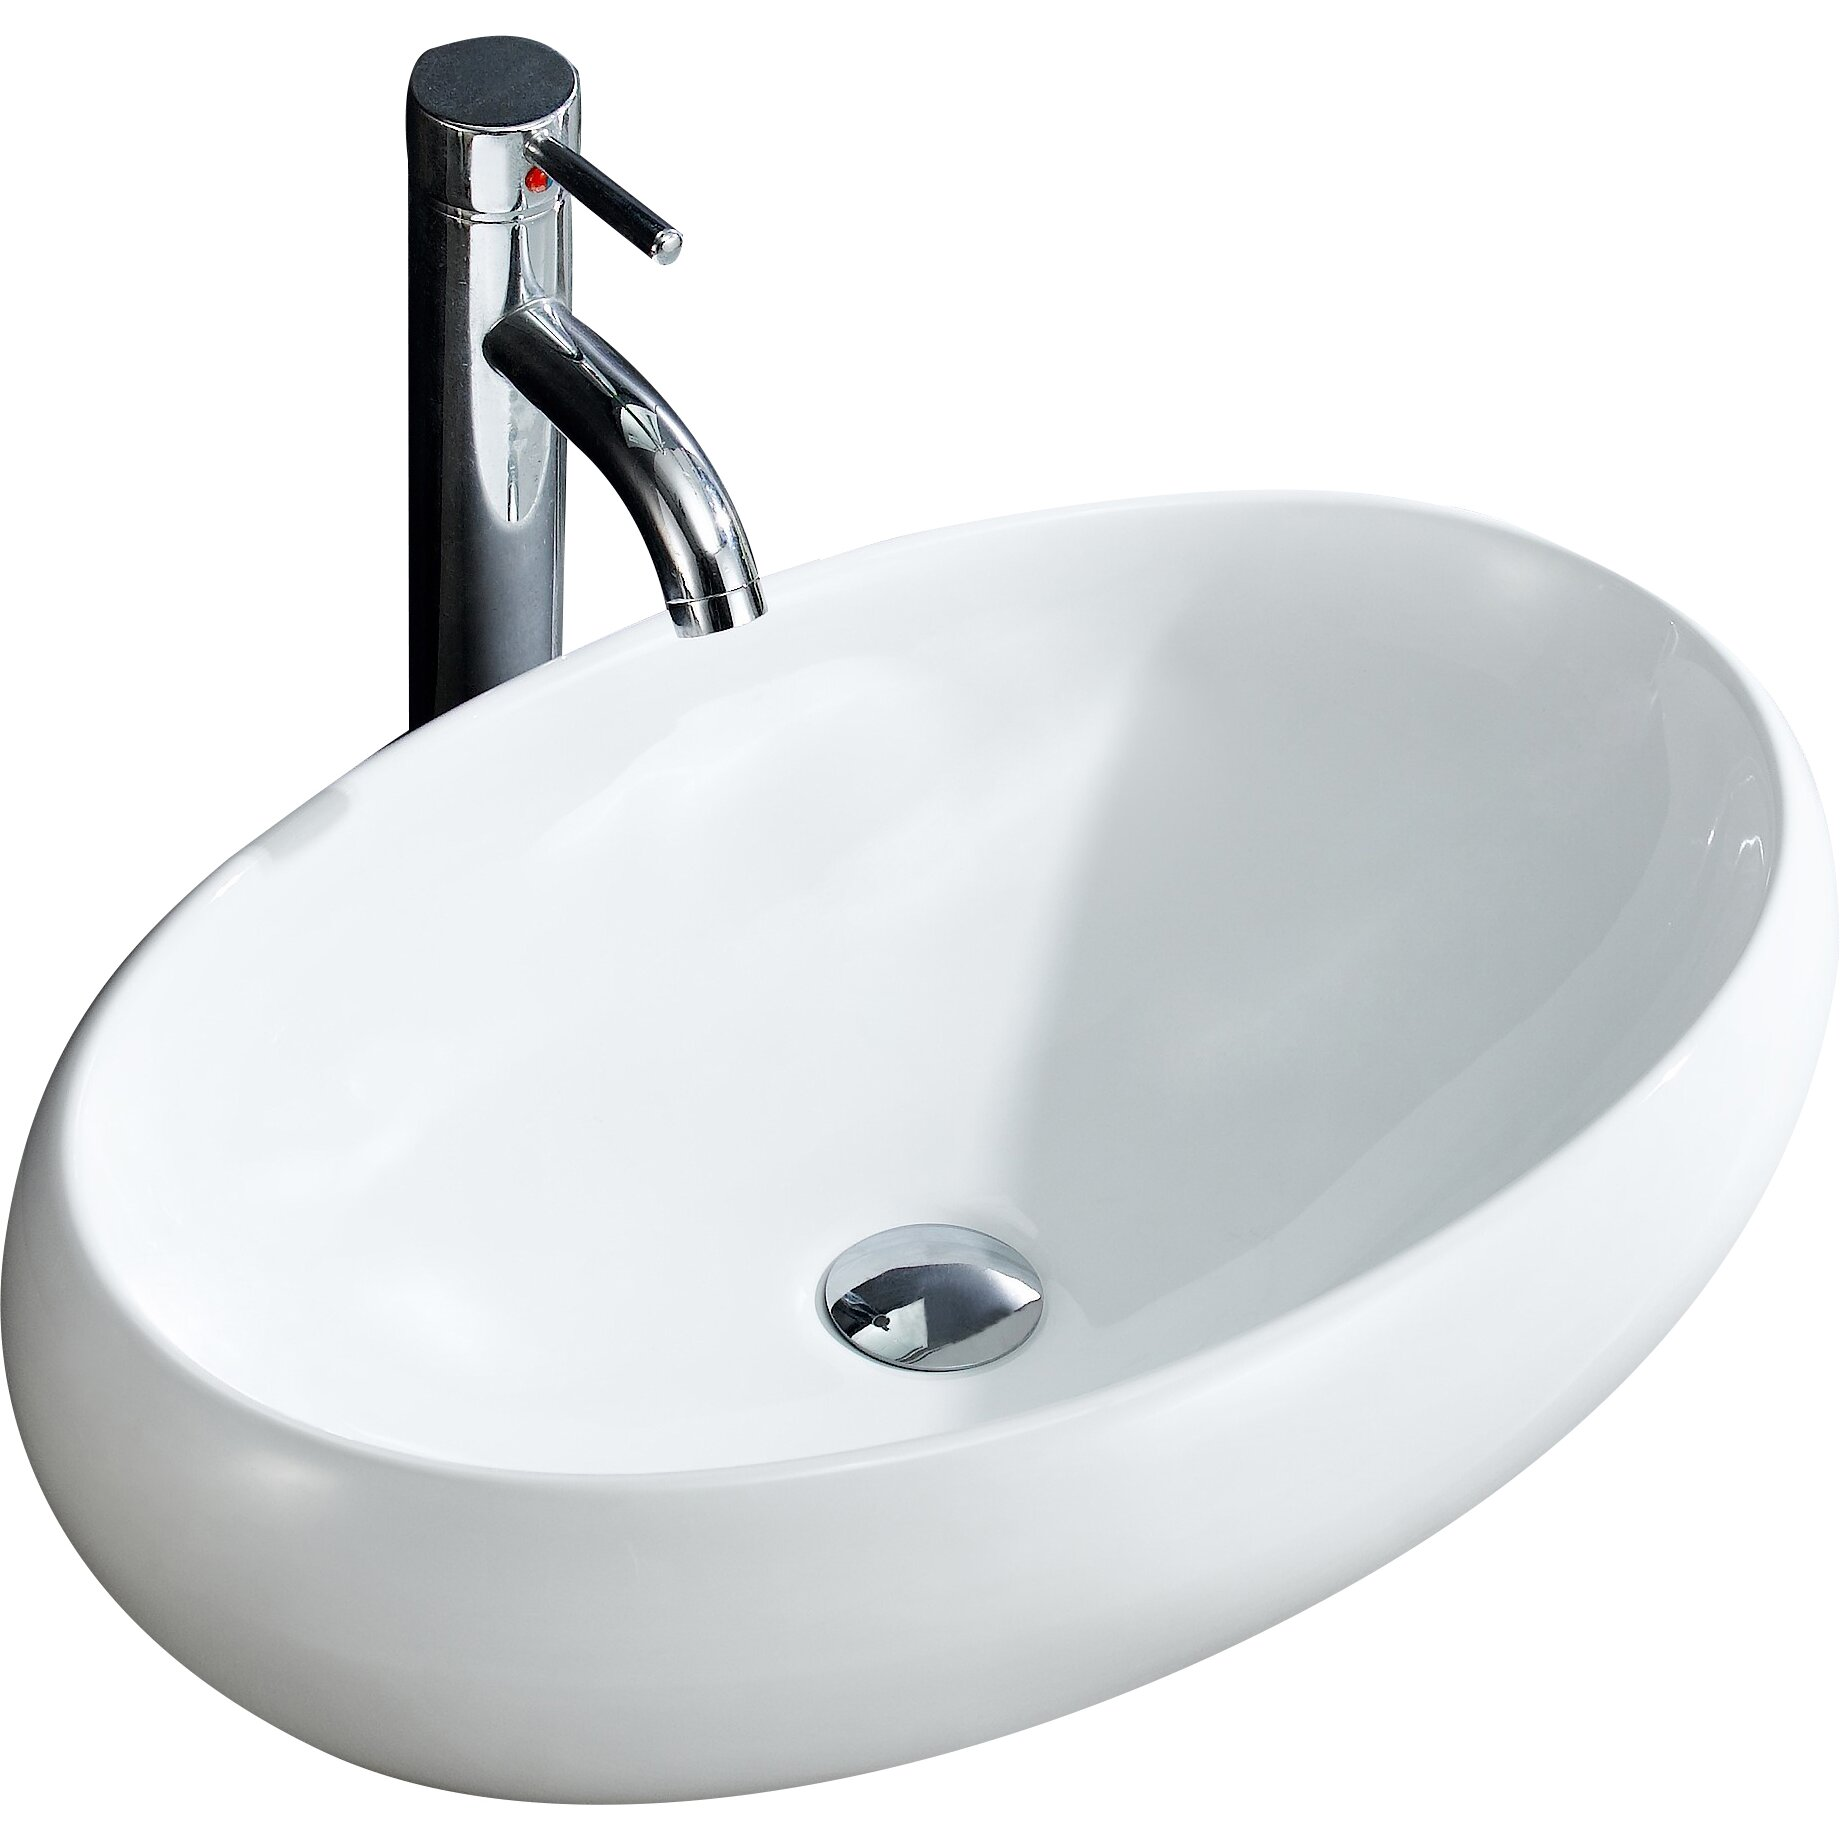 Modern Vessel Sinks : Modern Vitreous China Bulging Oval Vessel Sink Vessel Bathroom Sink by ...